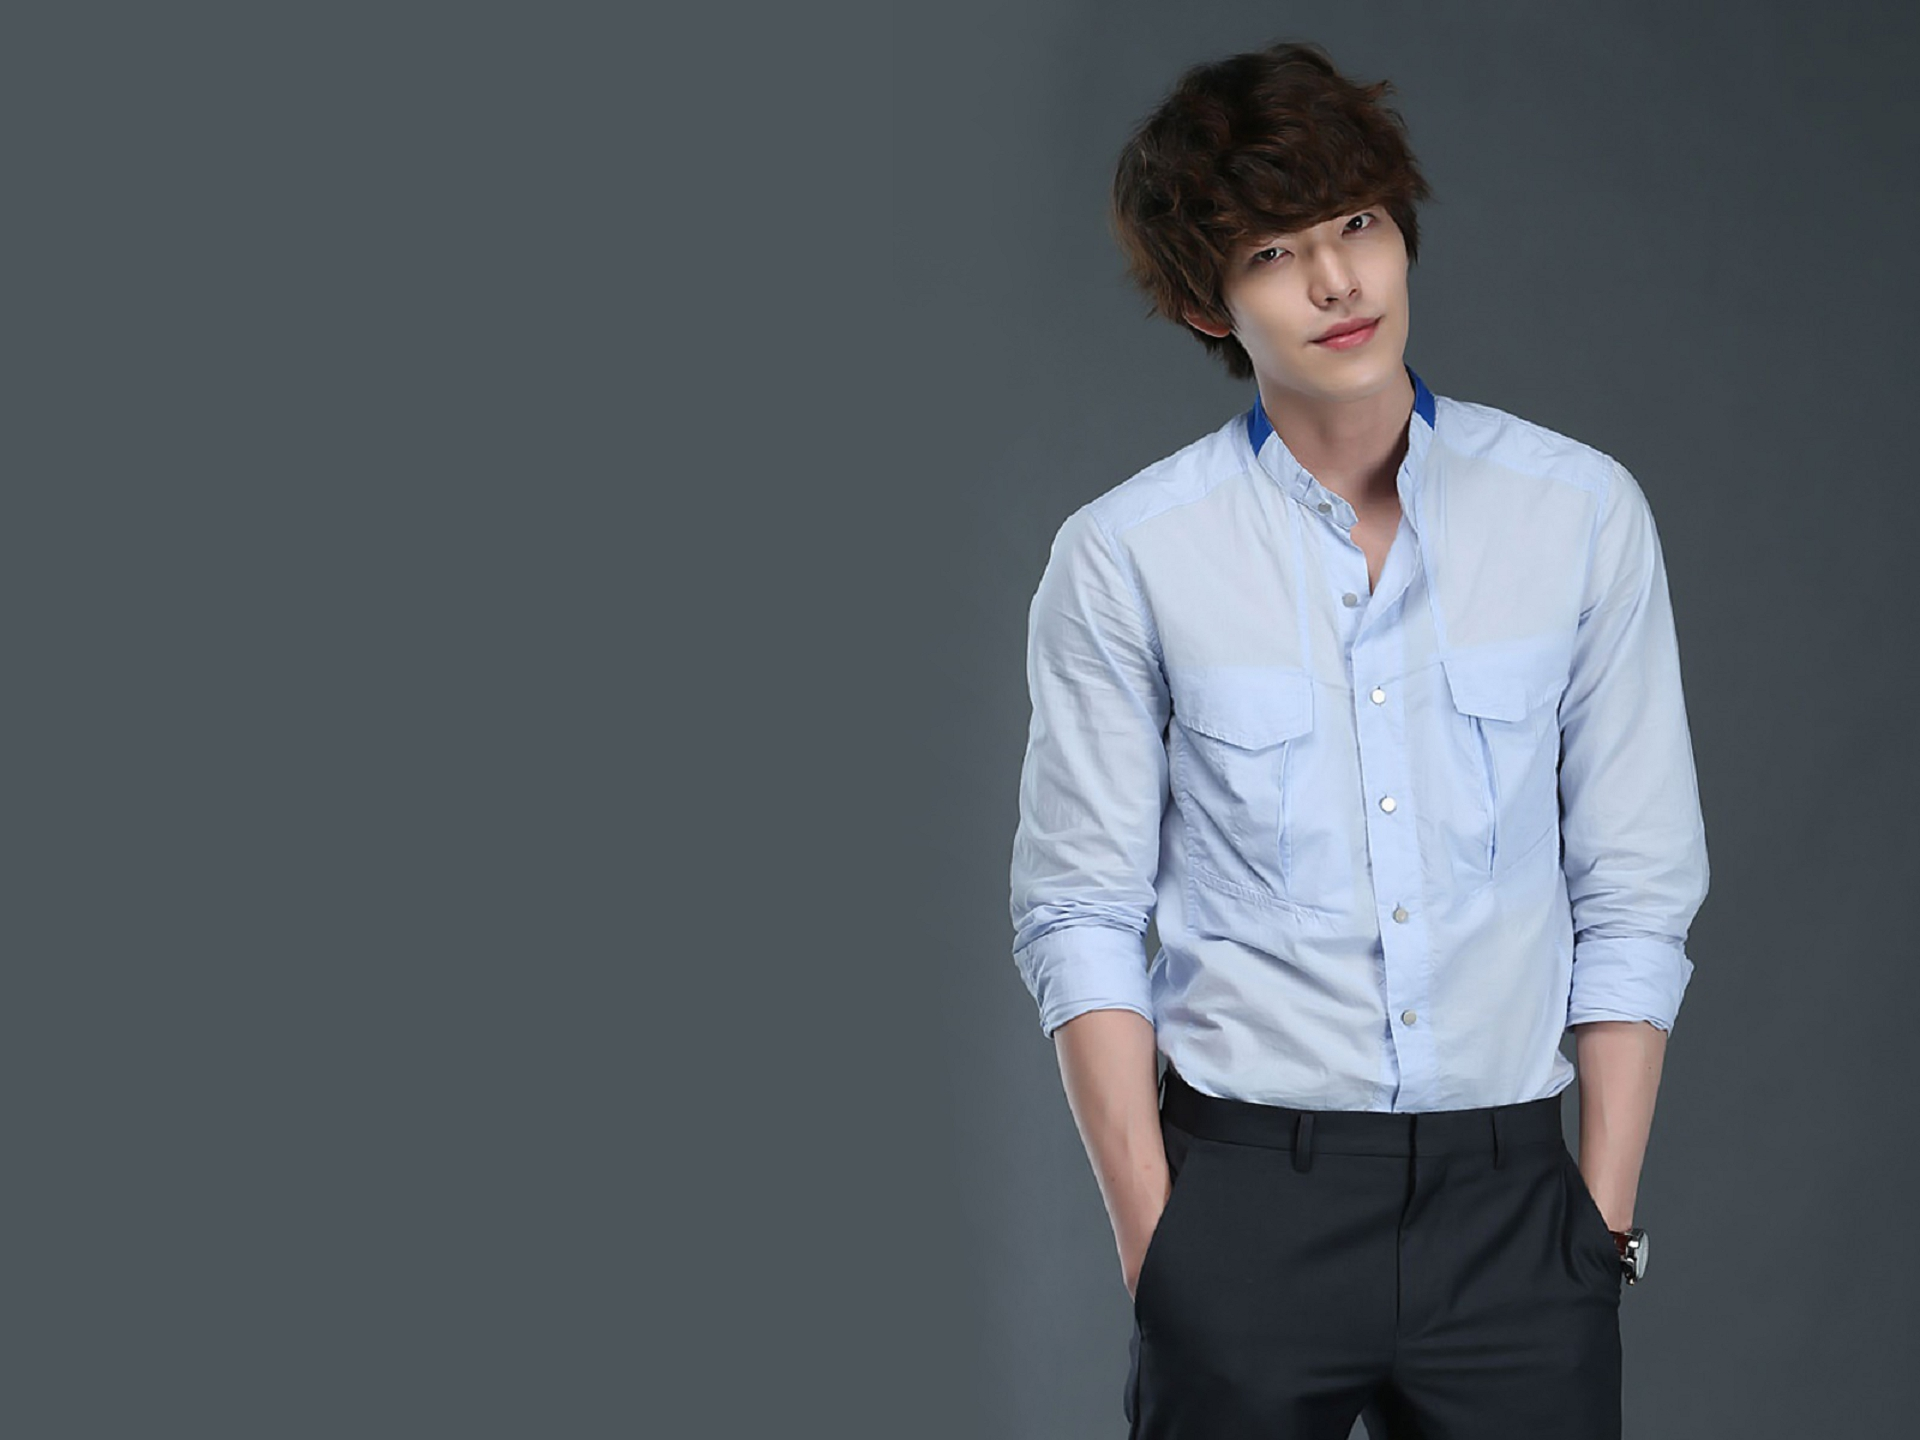 Kim Woo Bin Wallpapers Images Photos Pictures Backgrounds 1920x1440